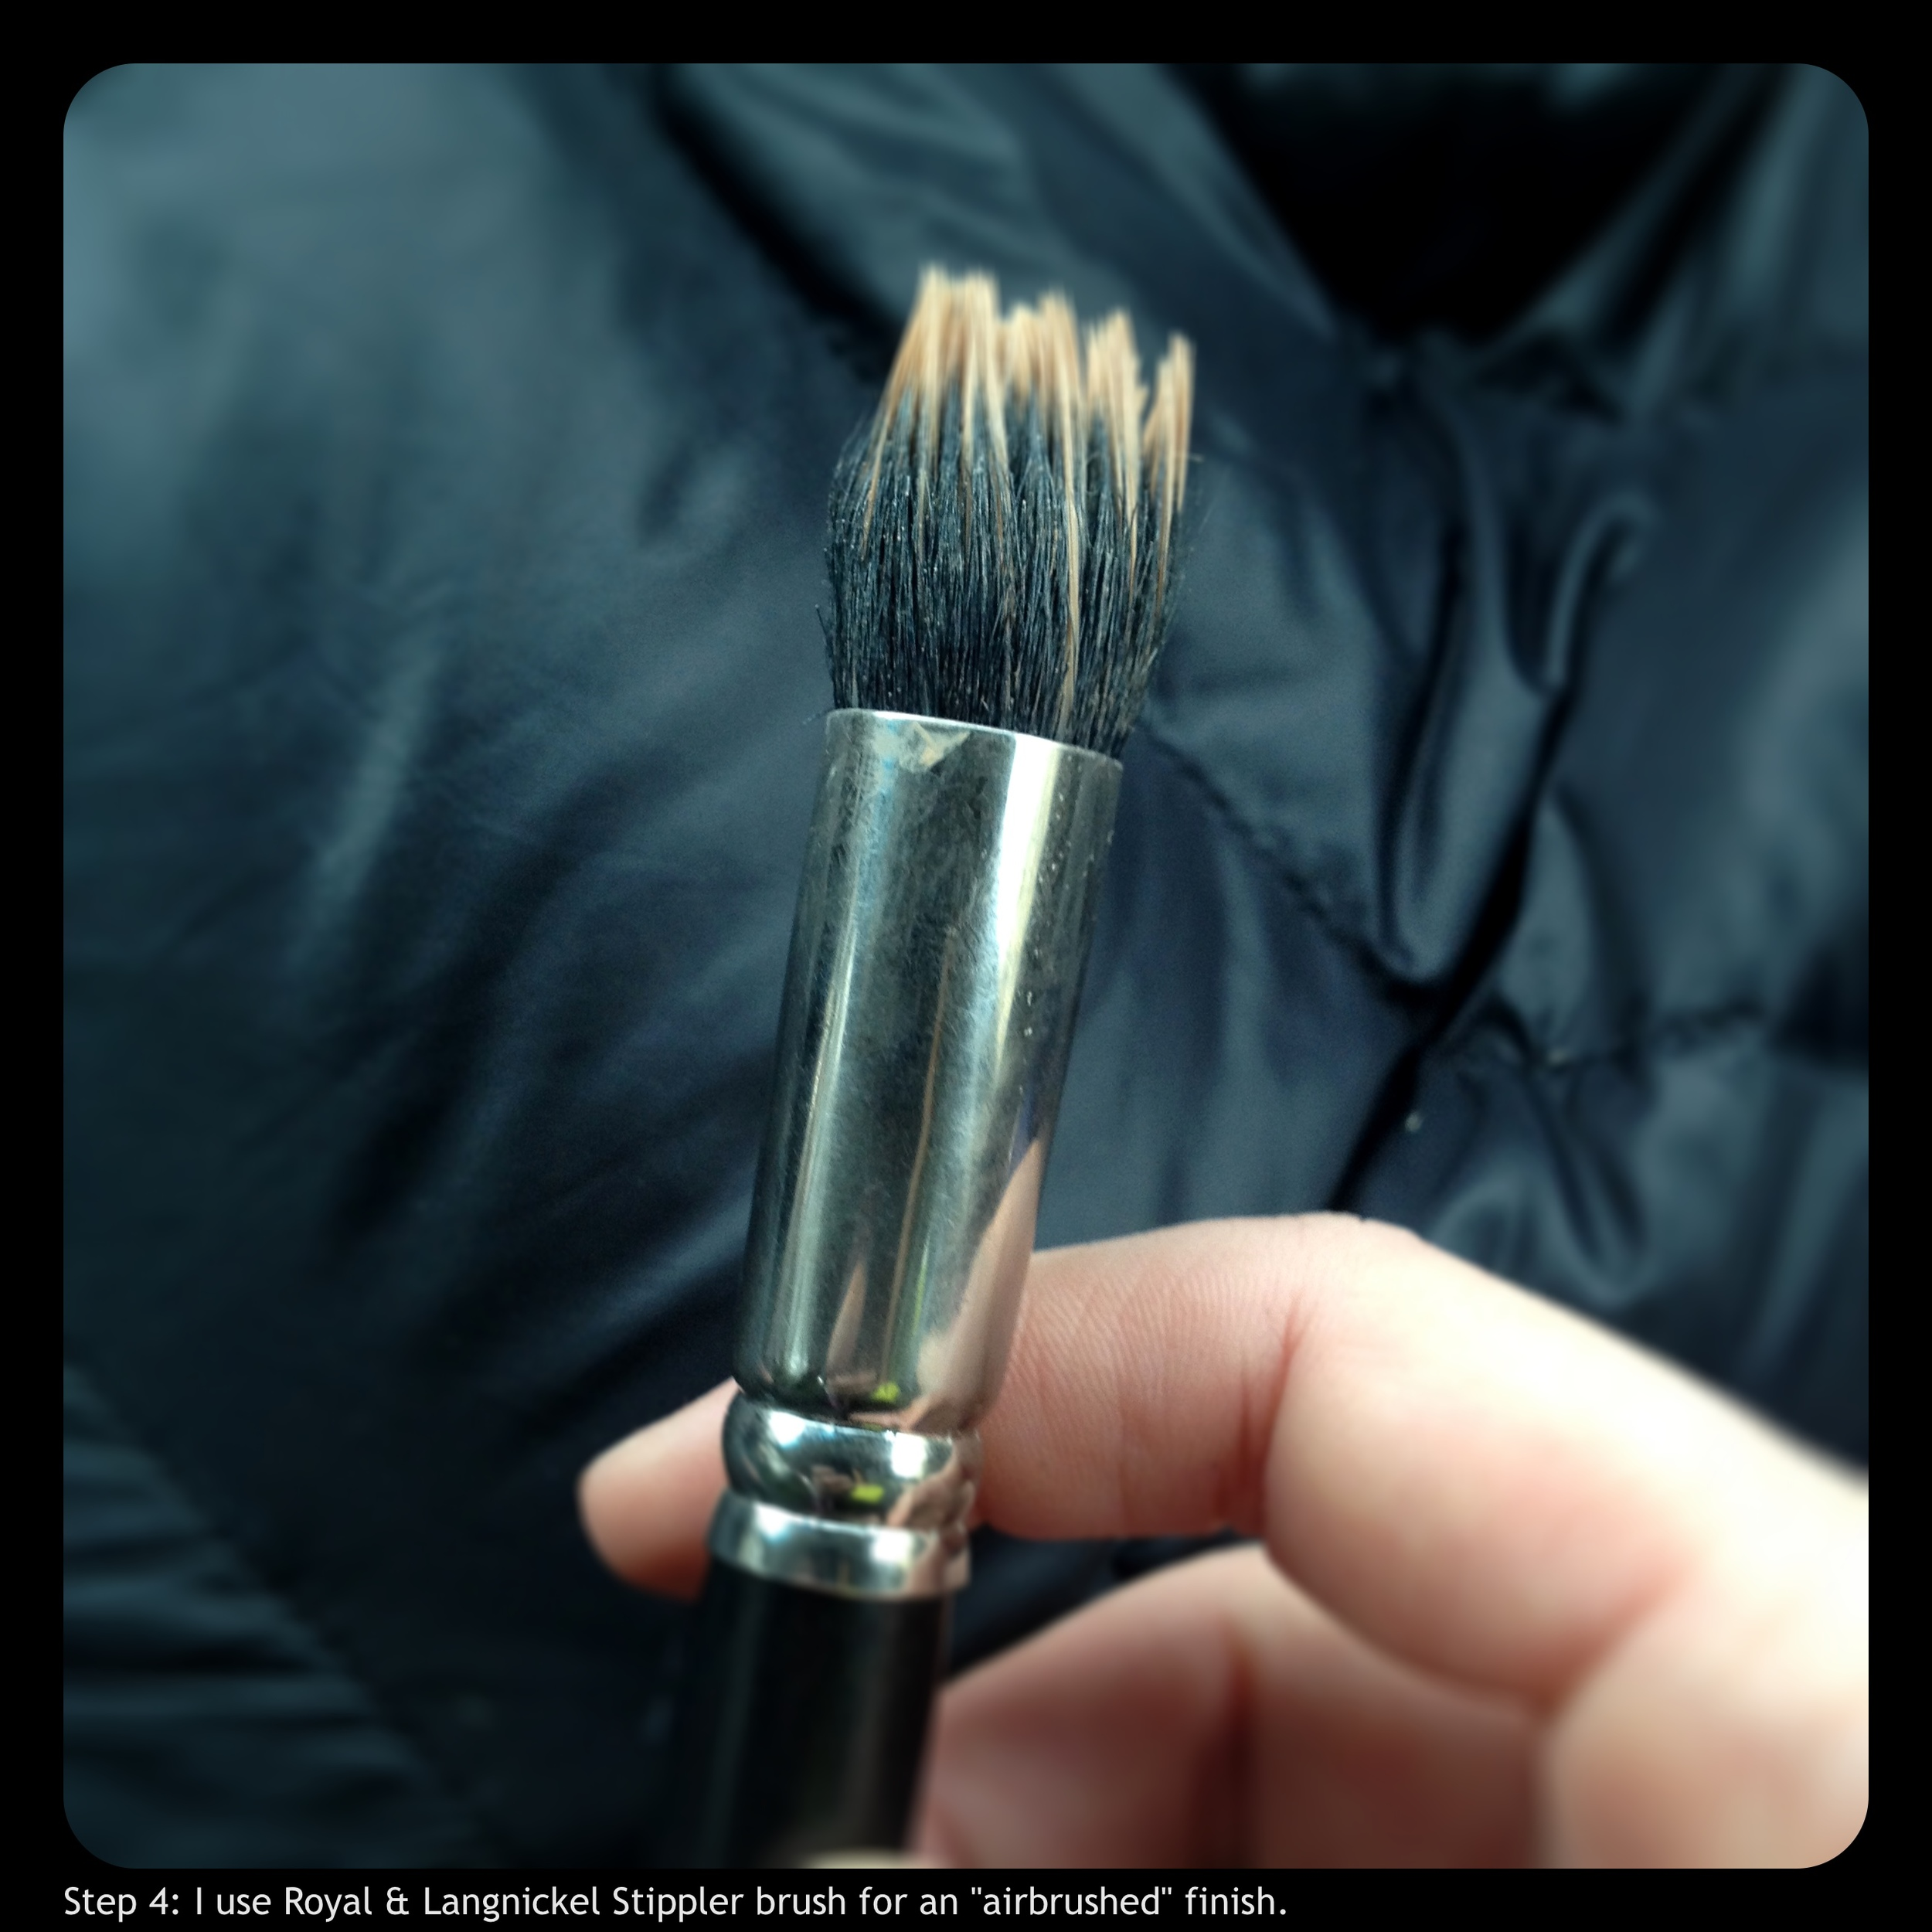 """Step 4: I use a Royal & Langnickel Stippler Brush for an """"airbrushed"""" finish."""